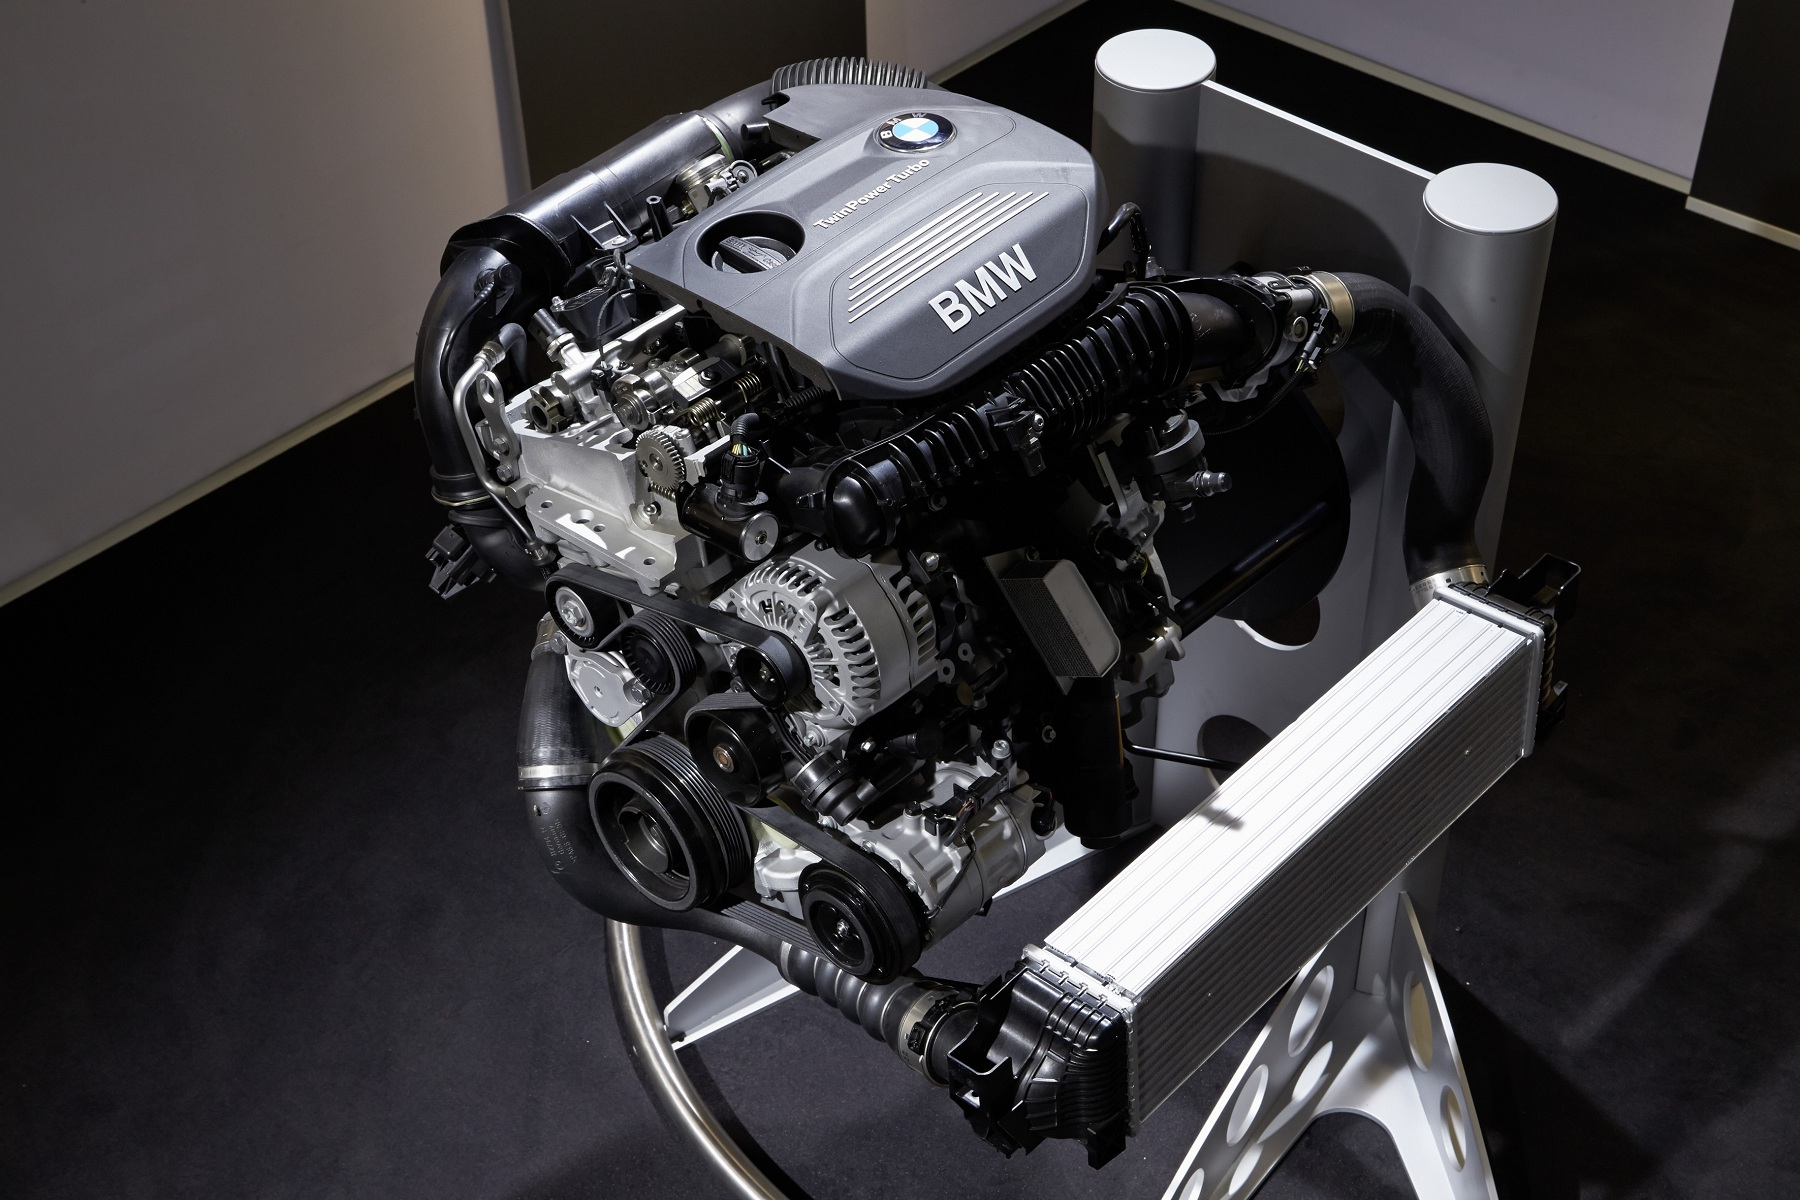 TwinPower Turbo 4-cylinder, gasoline engine